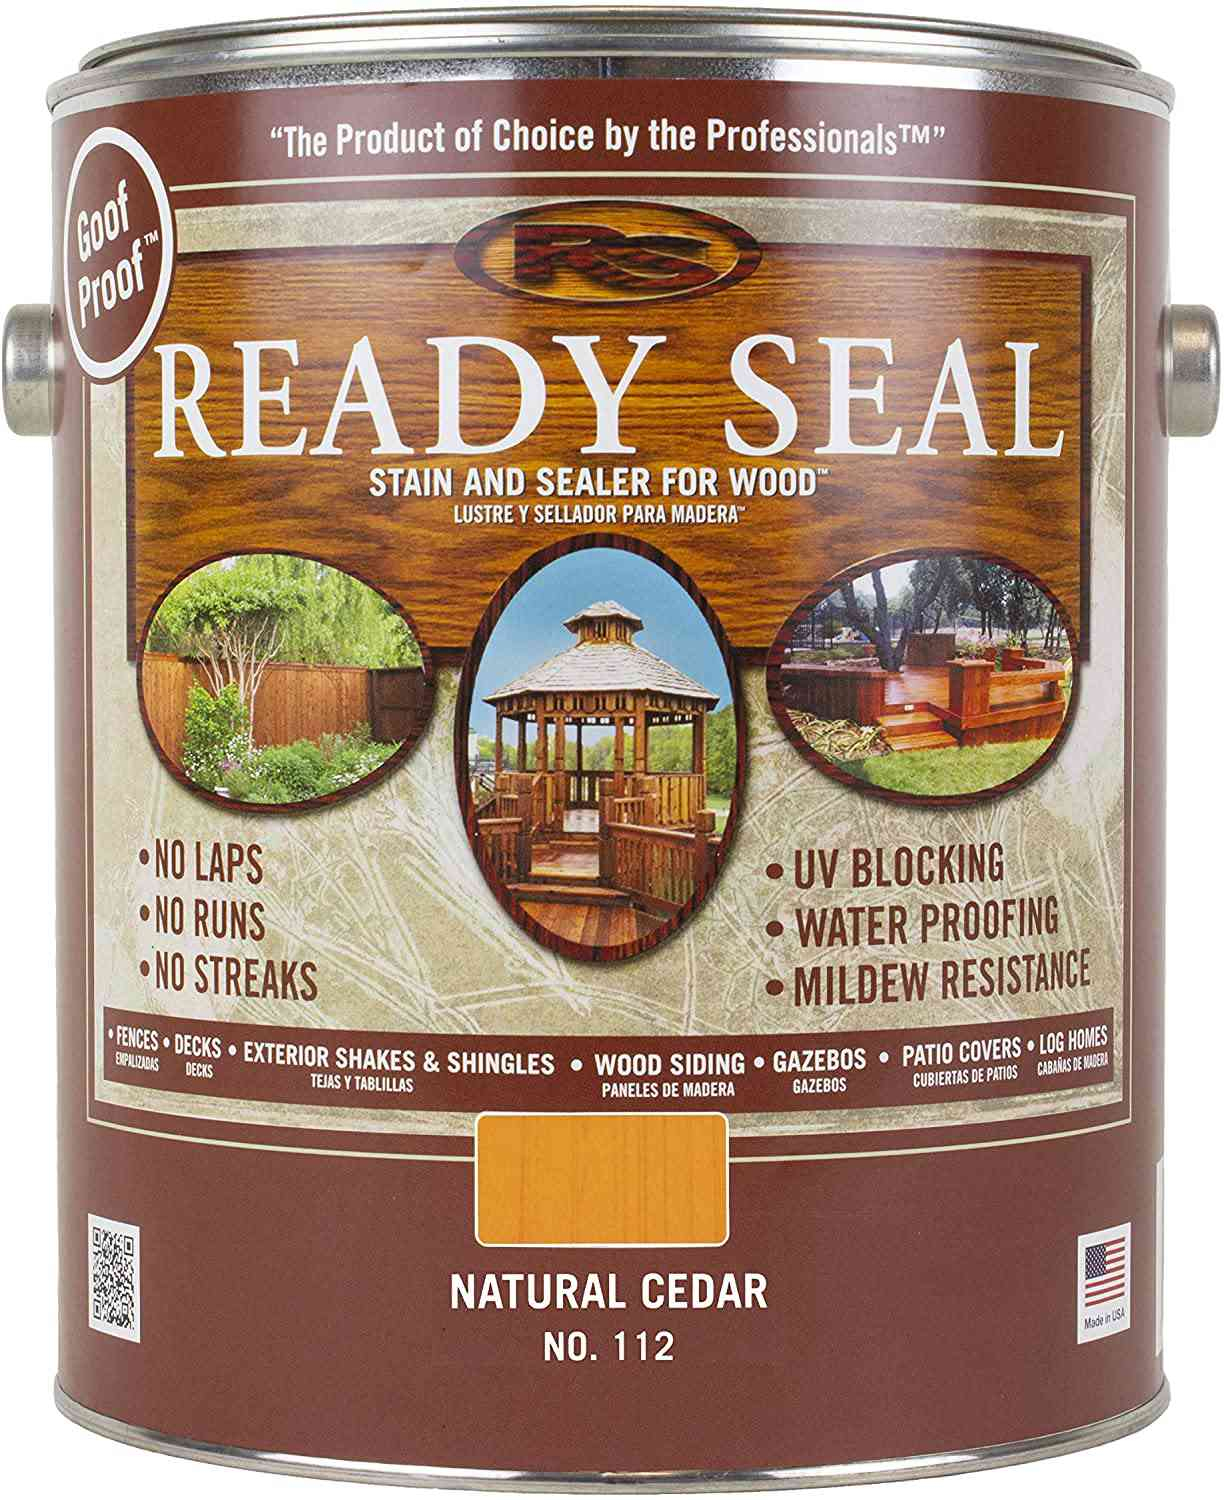 Ready-Seal-Exterior-Wood-Stain-Sealer